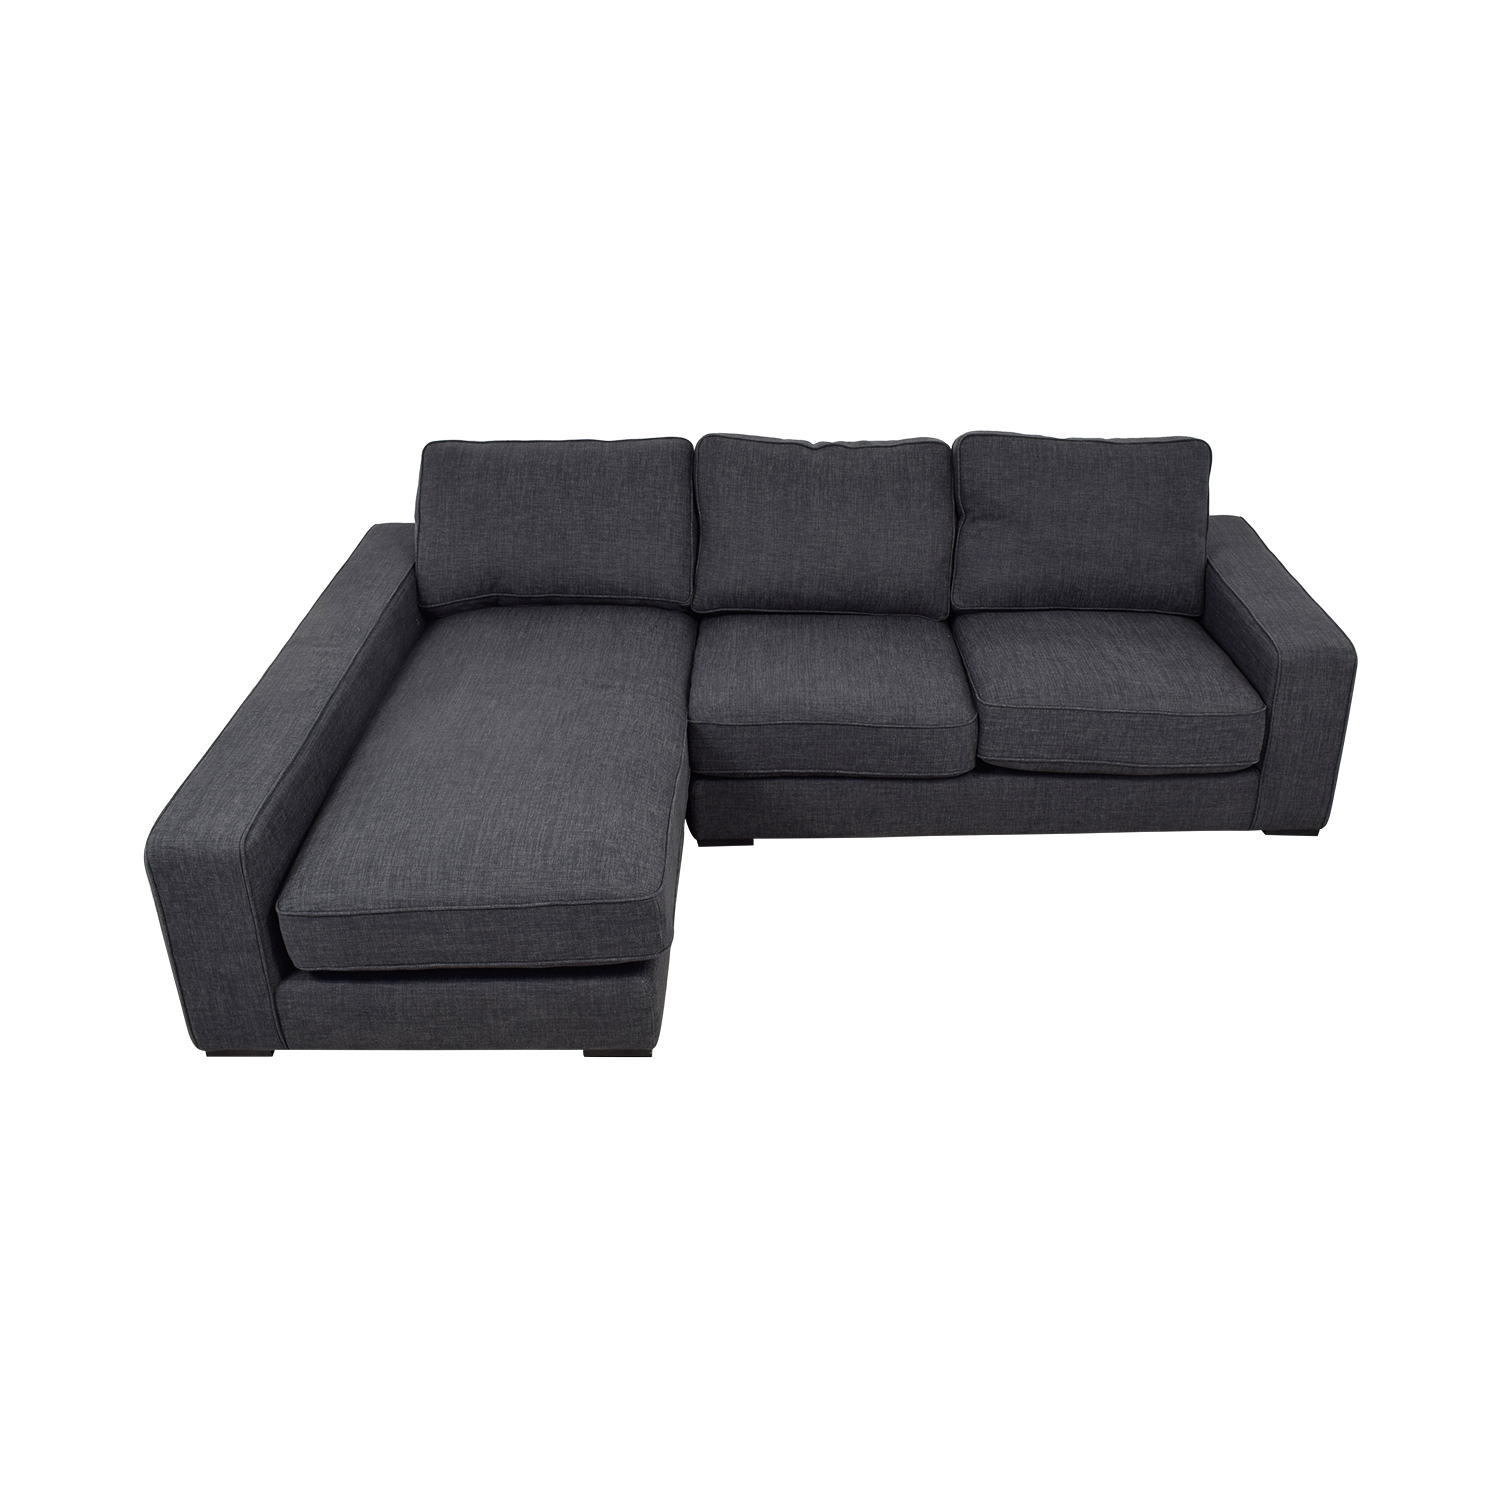 Ainsley Pebble Weave Left Chaise Sectional Dimensions